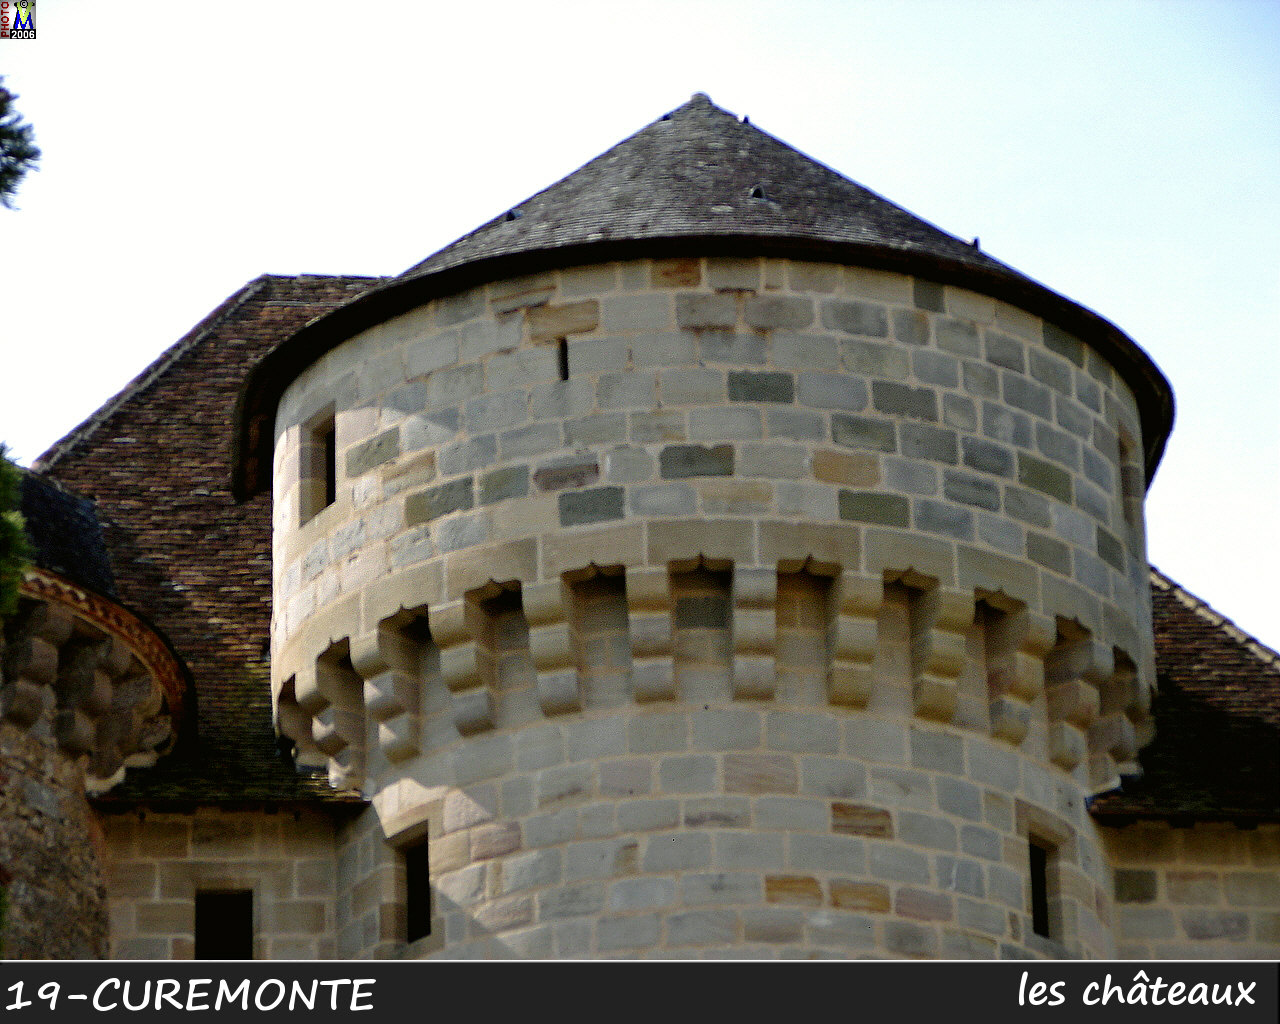 19CUREMONTE_chateau_150.jpg